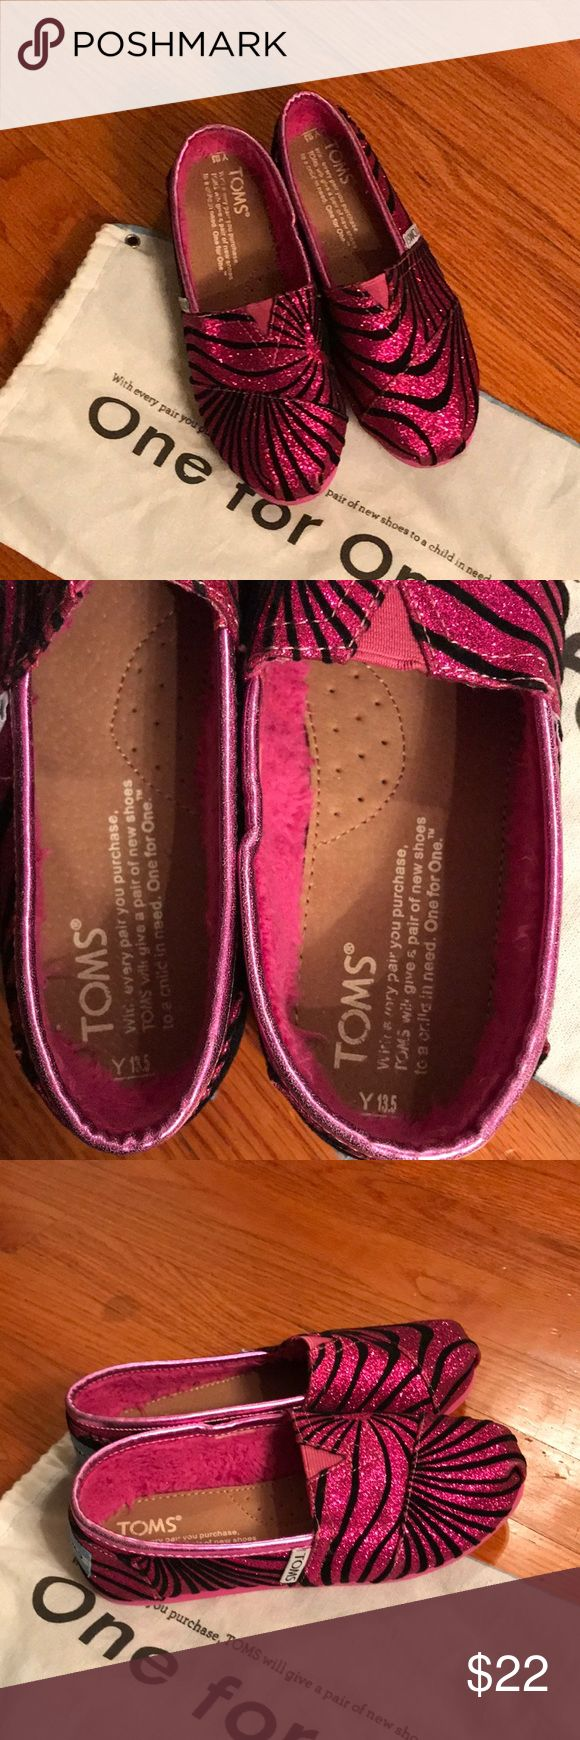 Pink and black glitter Tom's shoes Youth 13.5 Fun glitter pink and black Tom's shoes.  Youth 13.5. Great condition only worn once Toms Shoes